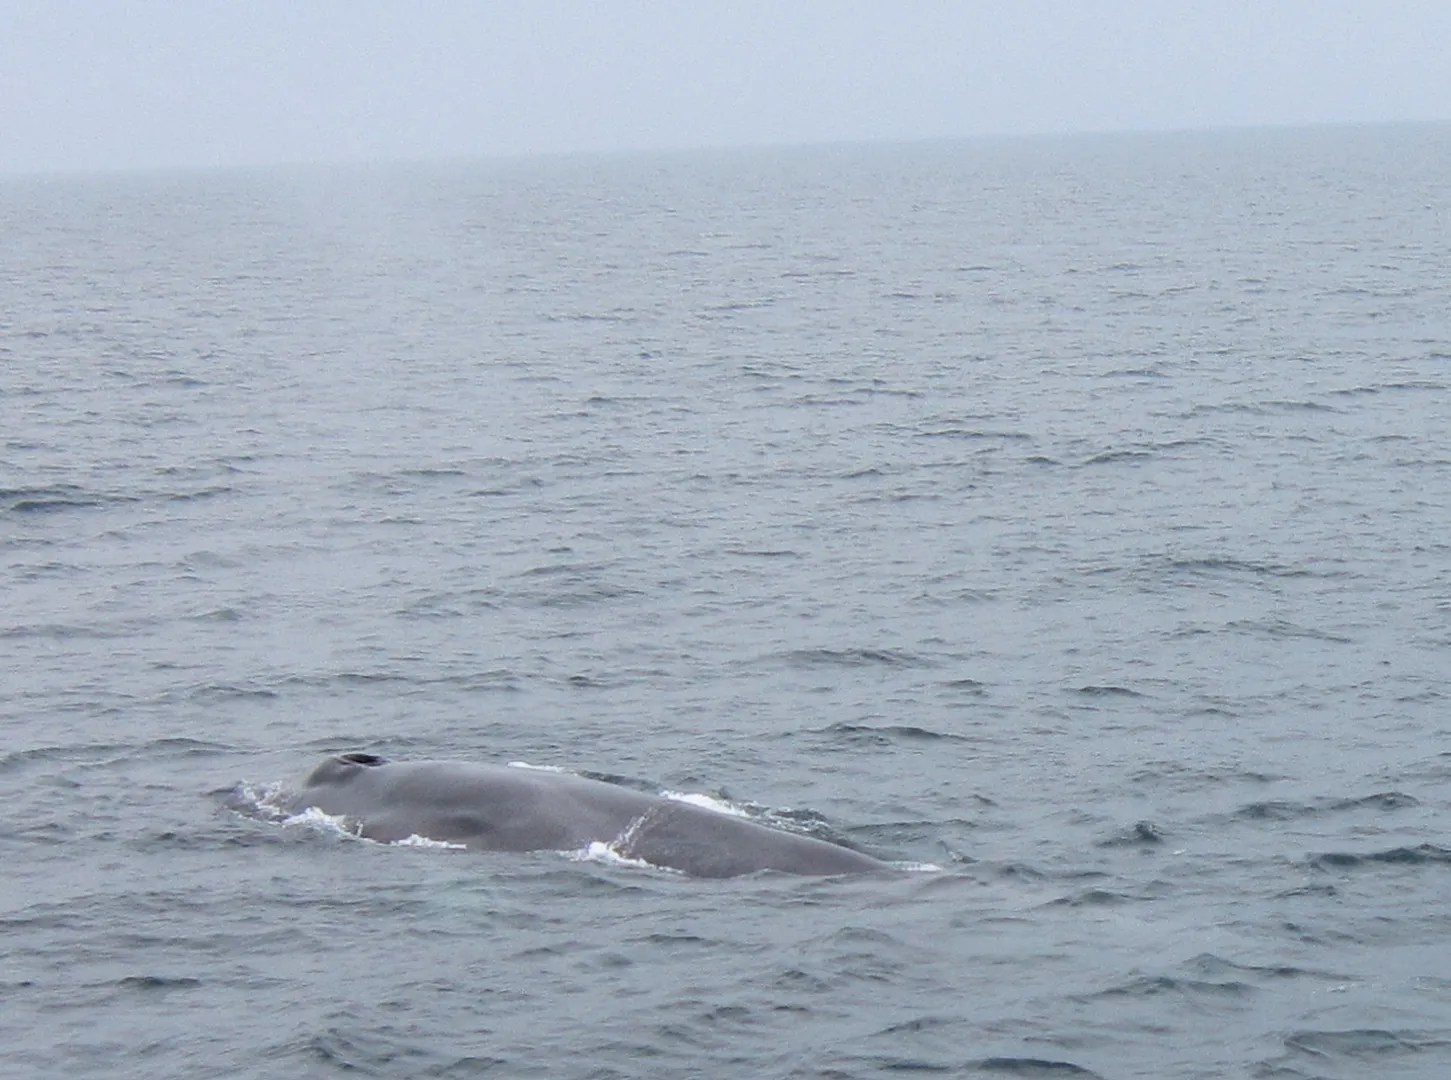 whale back, Cape Cod